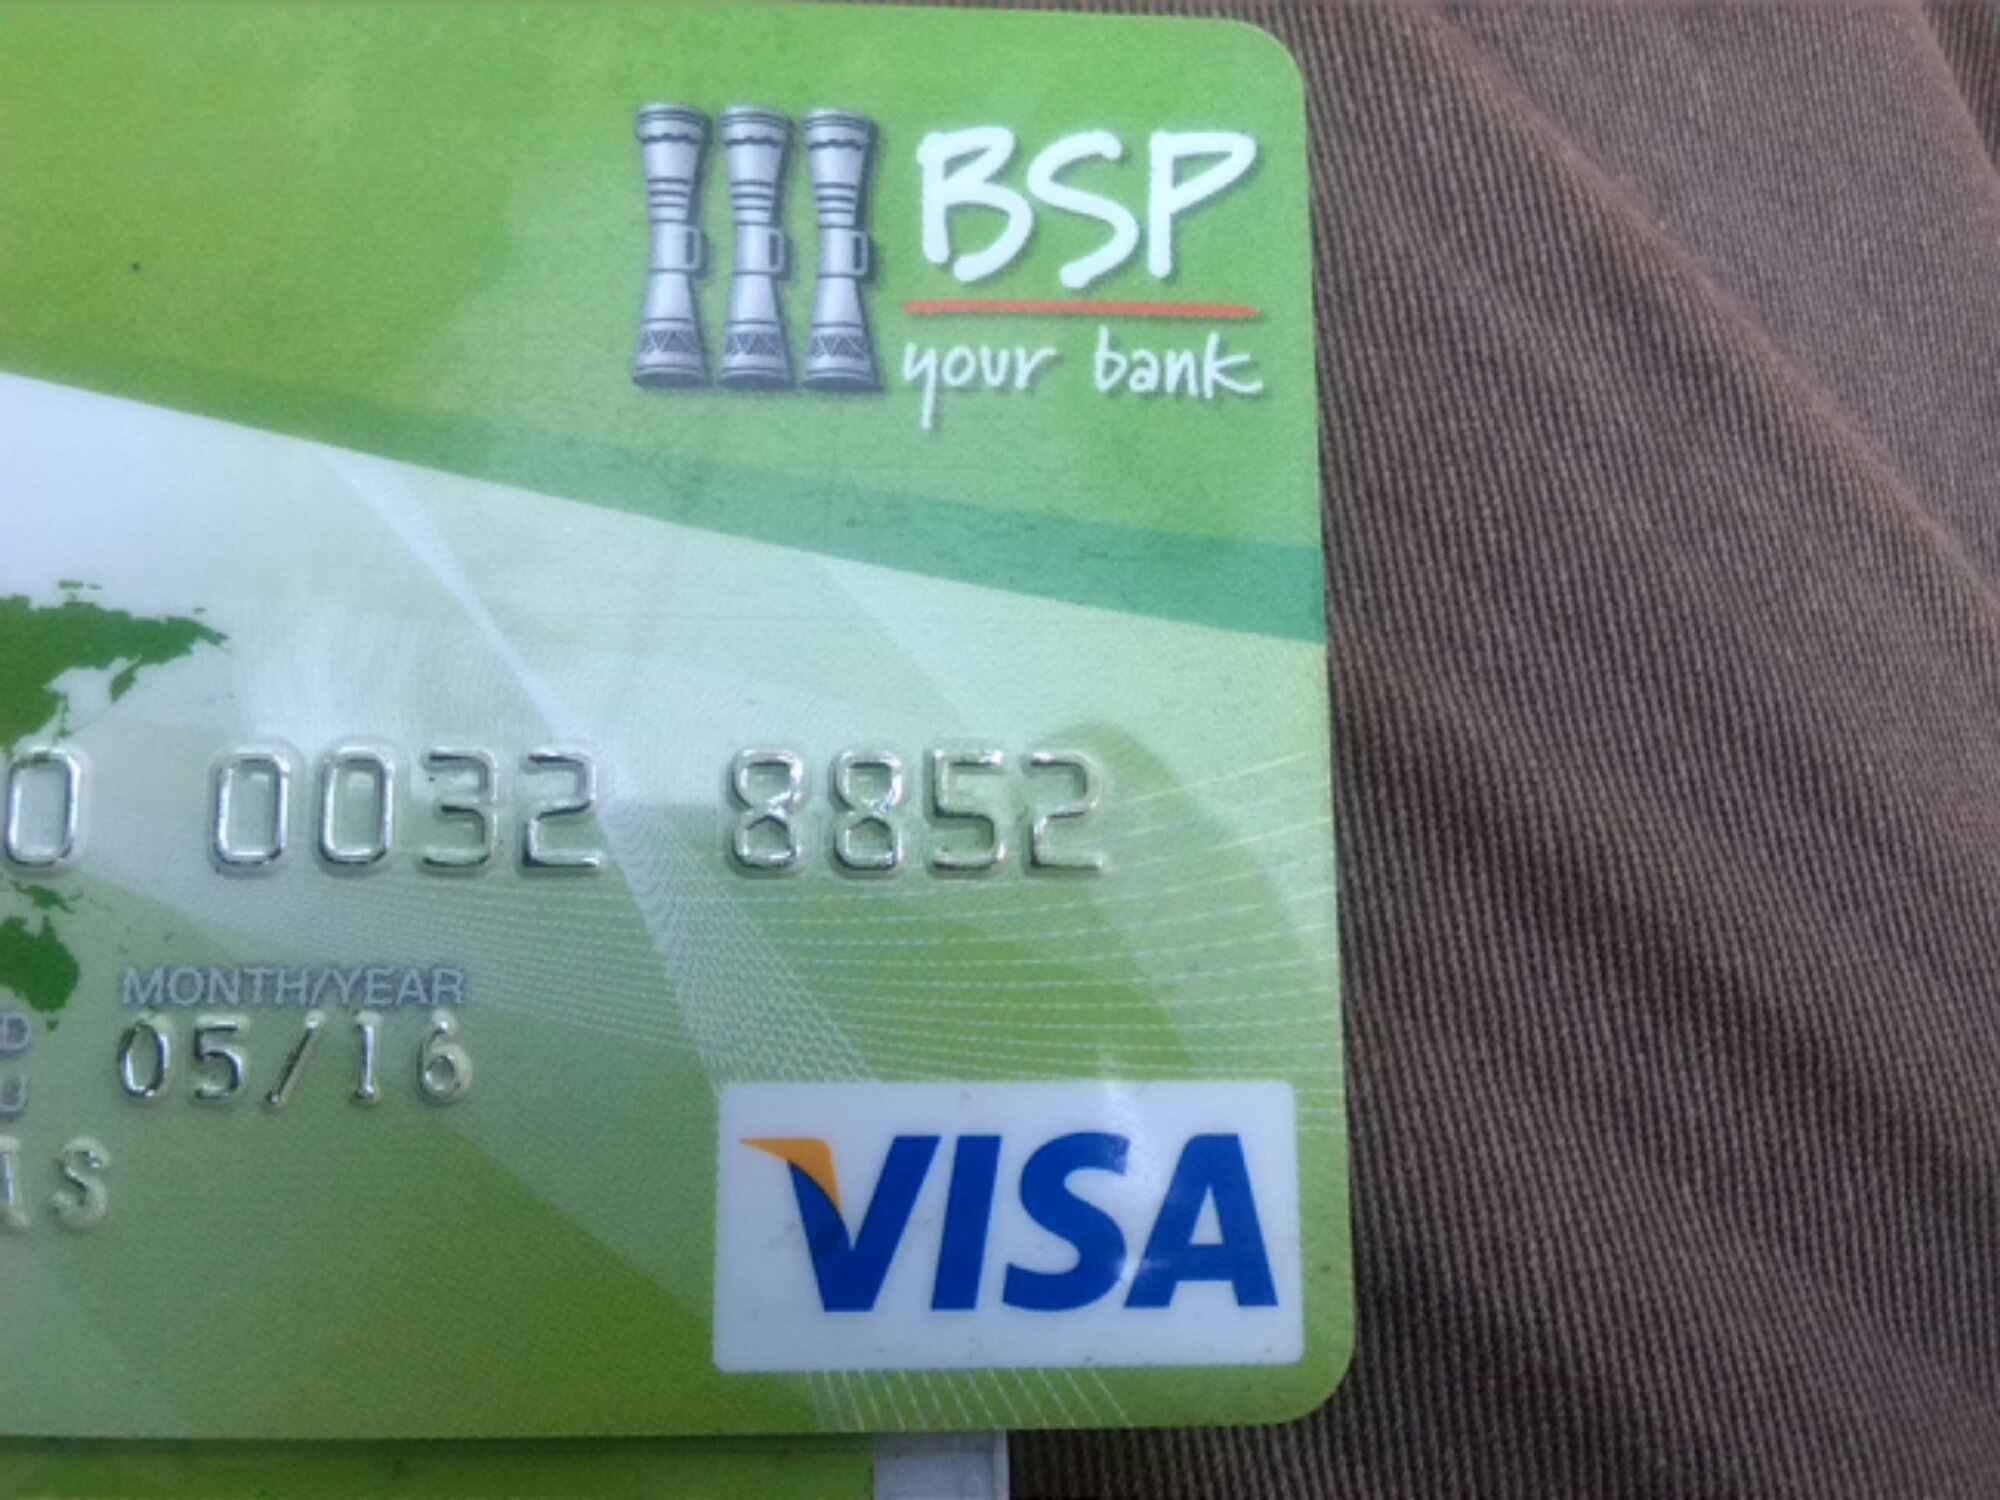 How To Shop Online With BSP Bank Visa Card.